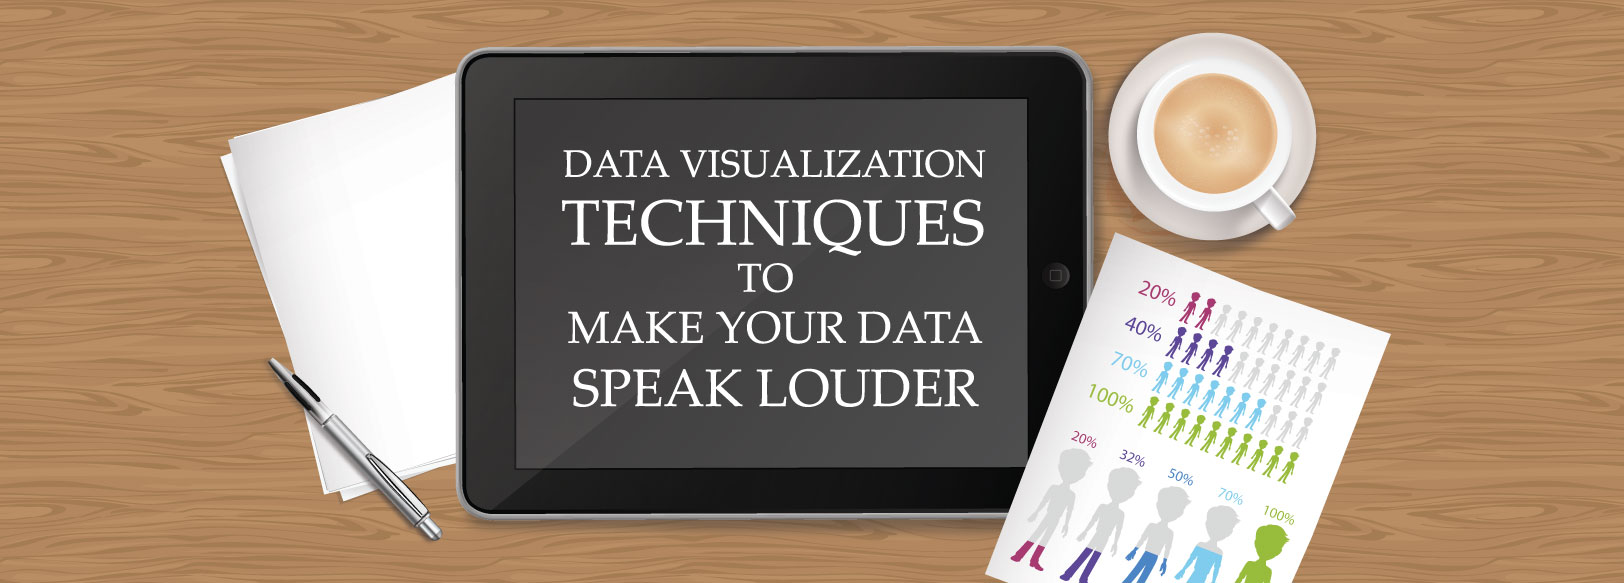 Data Visualization Techniques to Make Your Data Speak Louder